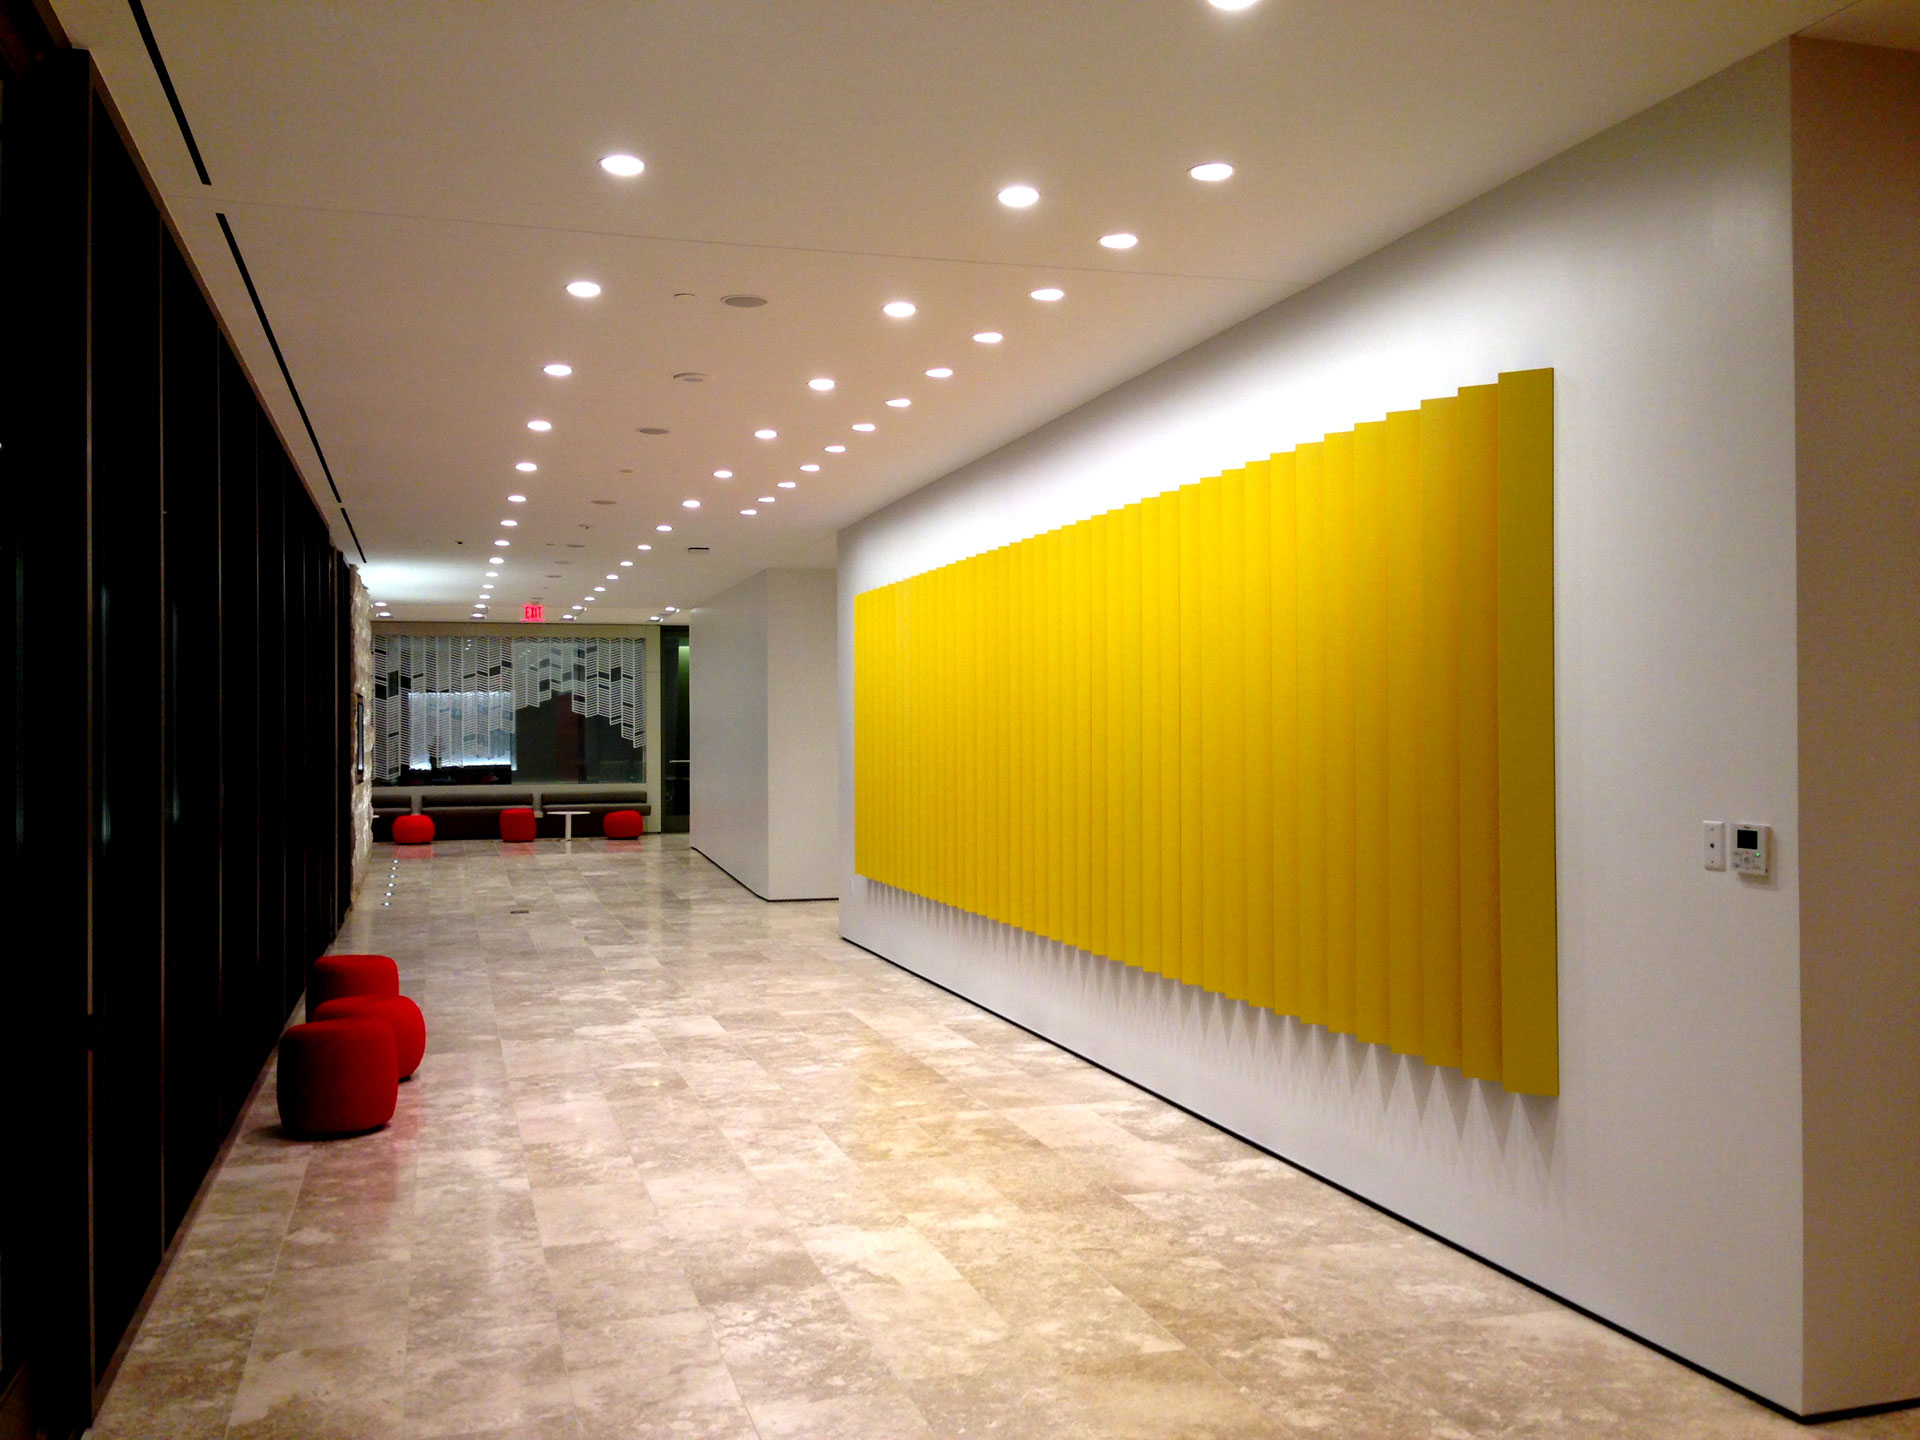 Edmond van der Bijl, Sculpture, American Psychological Association, yellow color bars